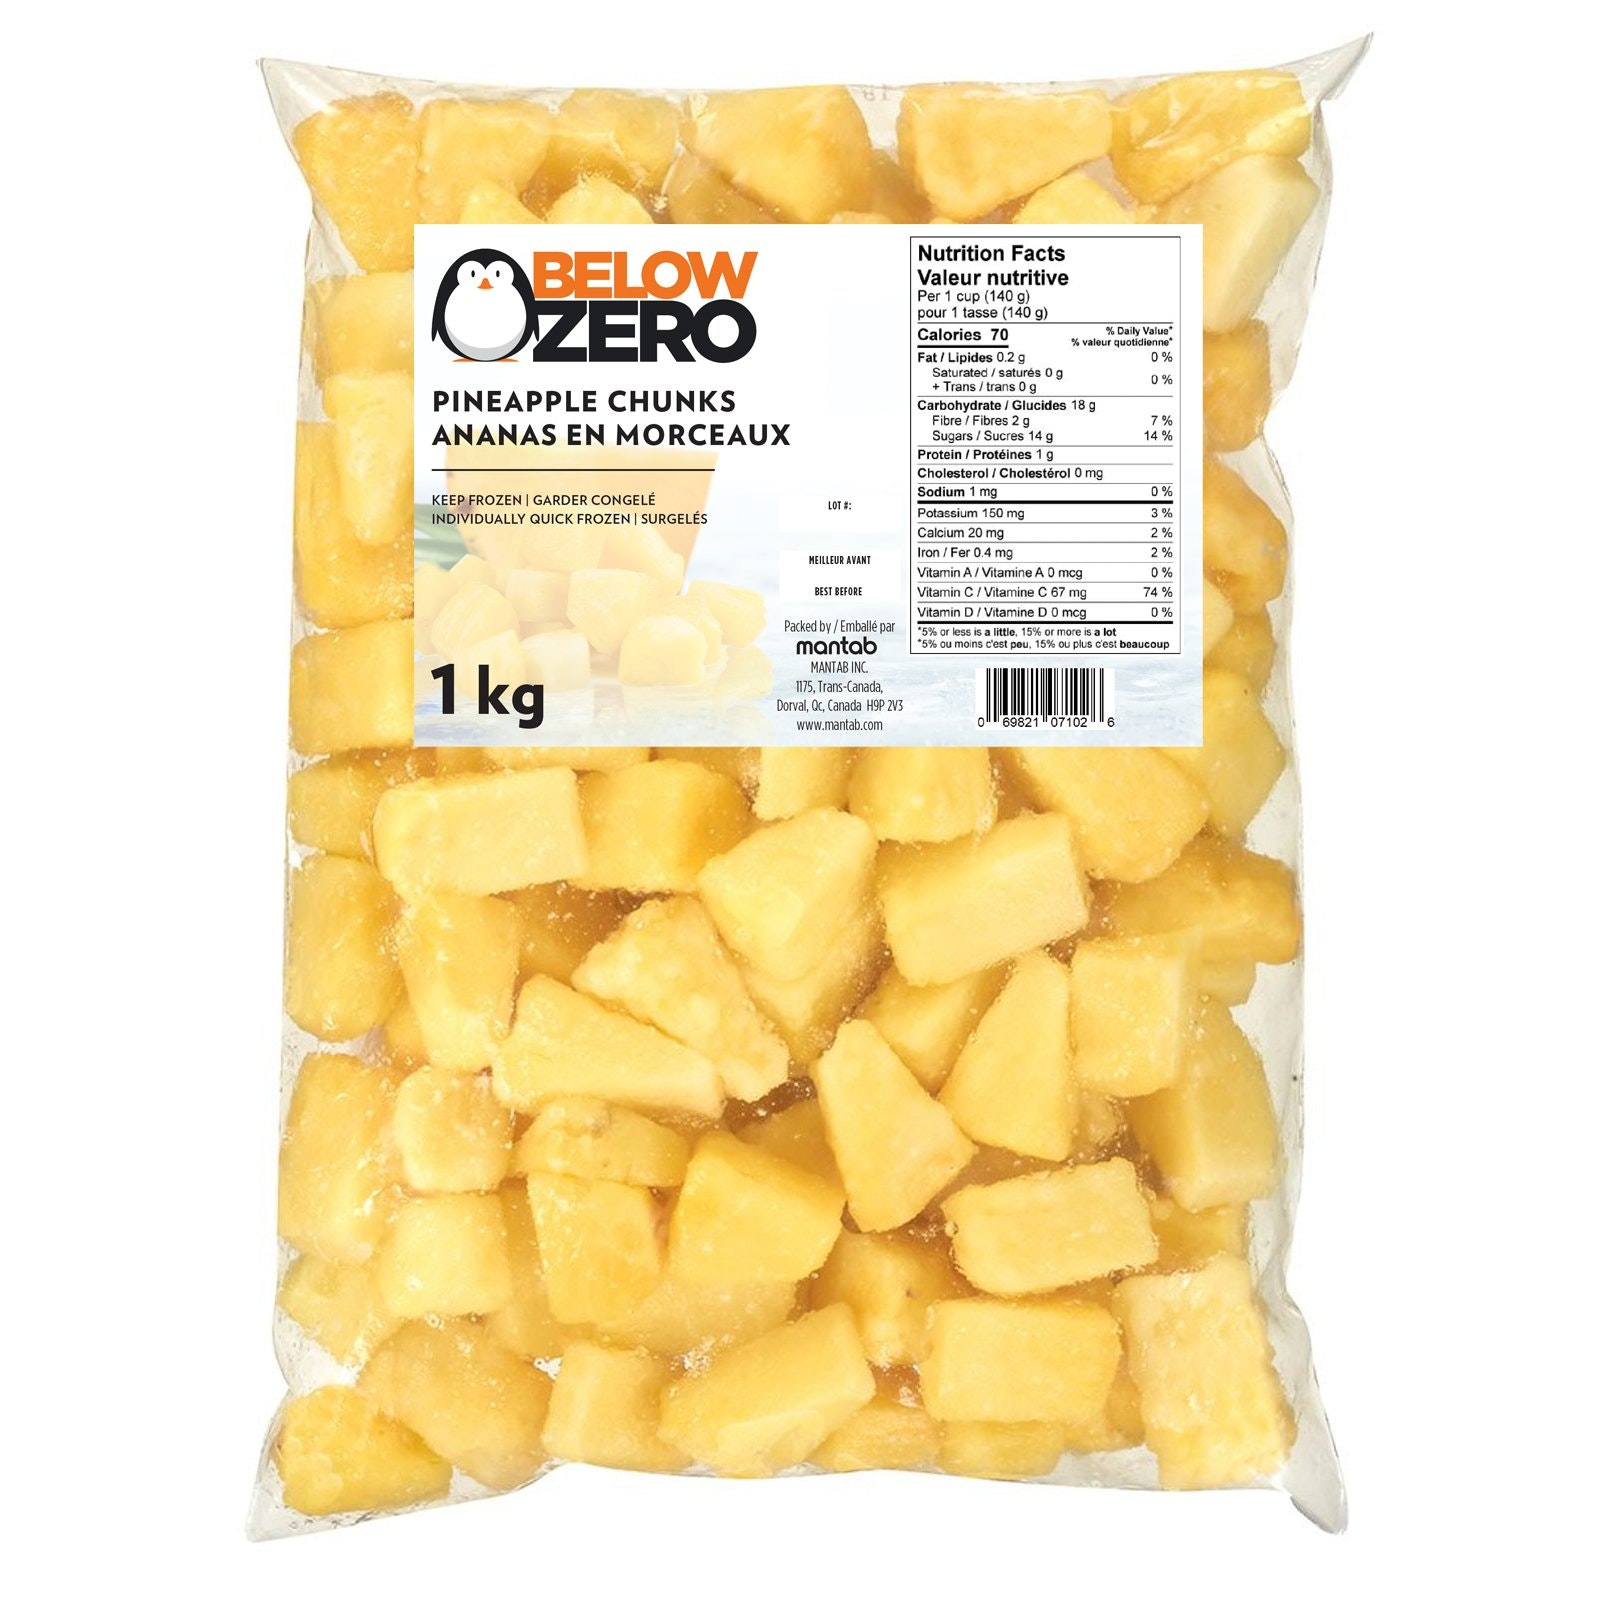 BELOW ZERO Pineapple chunks